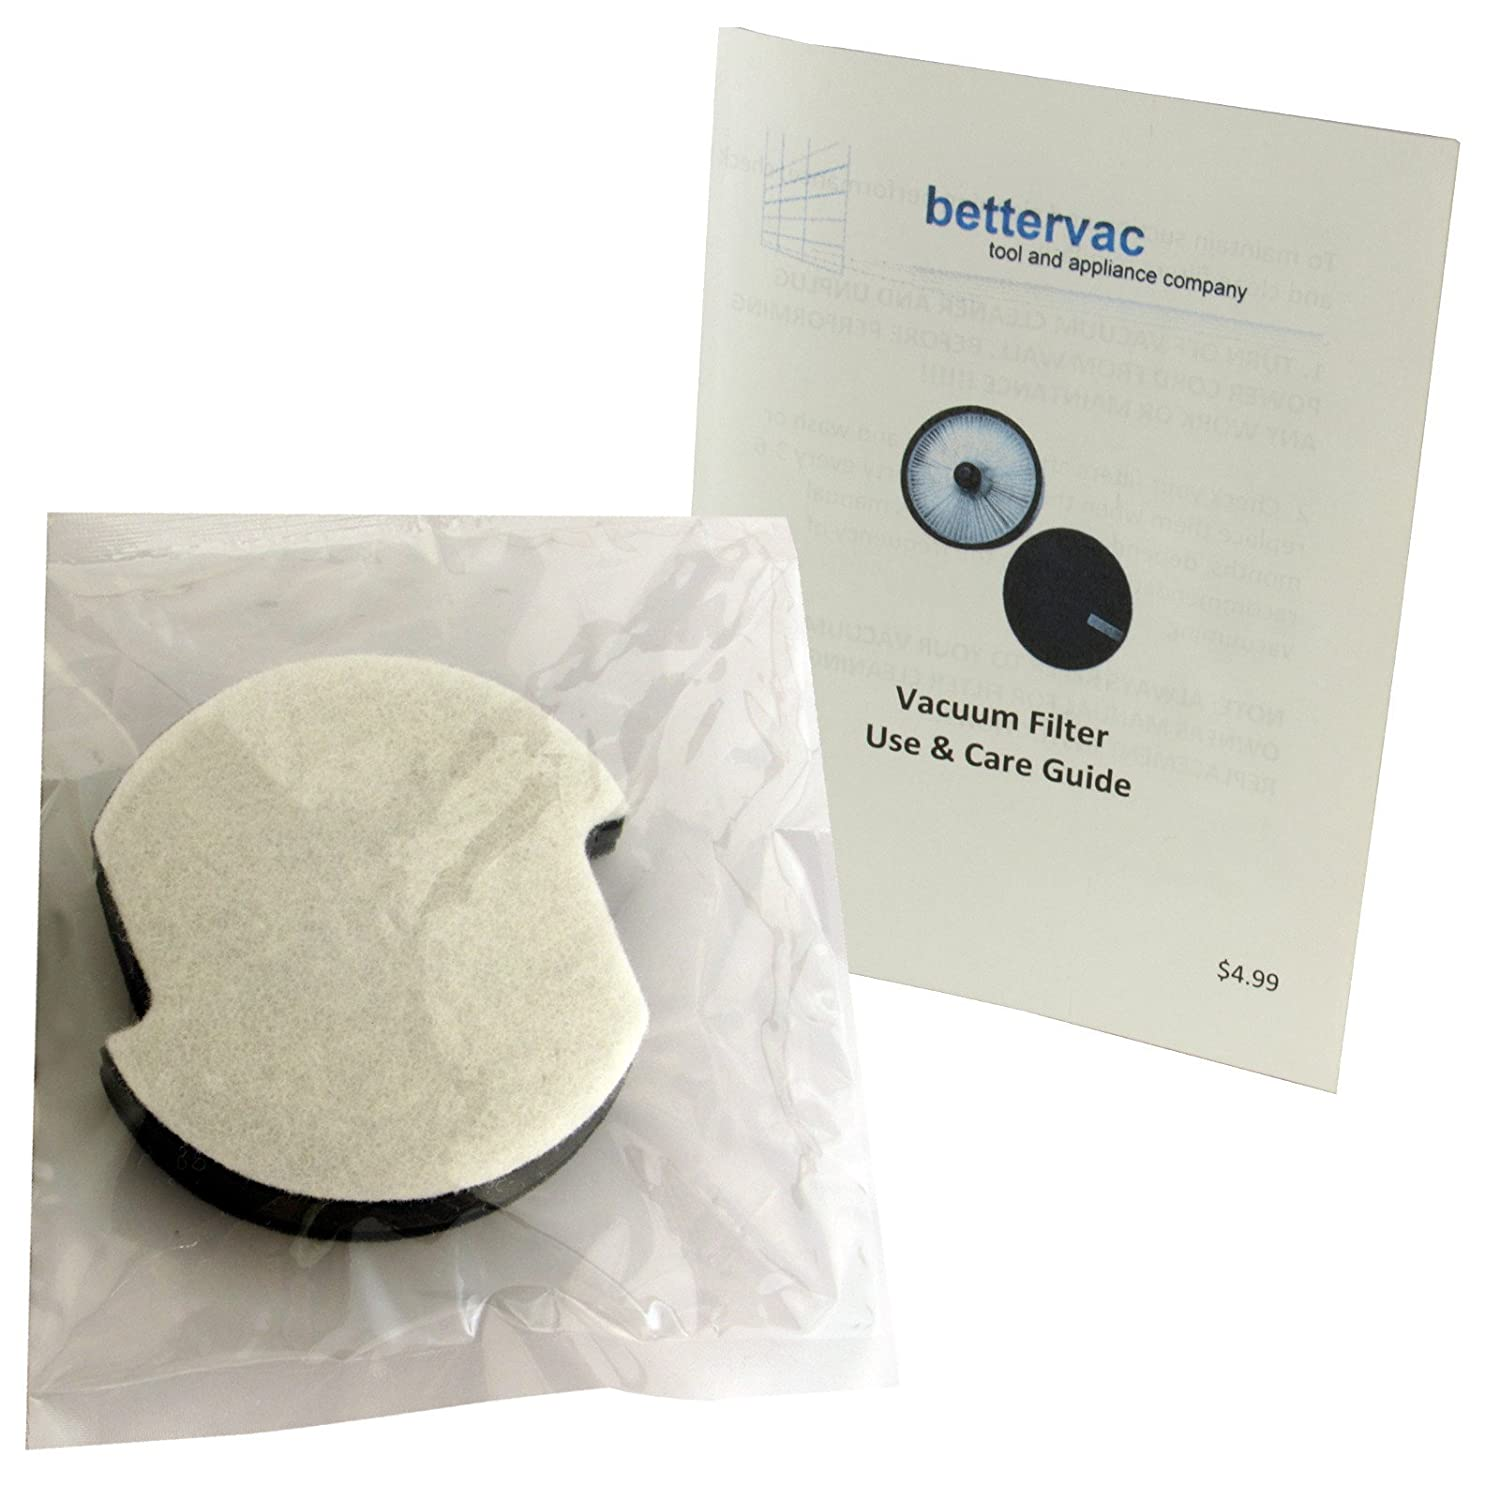 Bissell PowerLifter & Powertrak Pet Sealed Frebreze Vacuum Filter #1604102 Bundled With Use And Care Guide